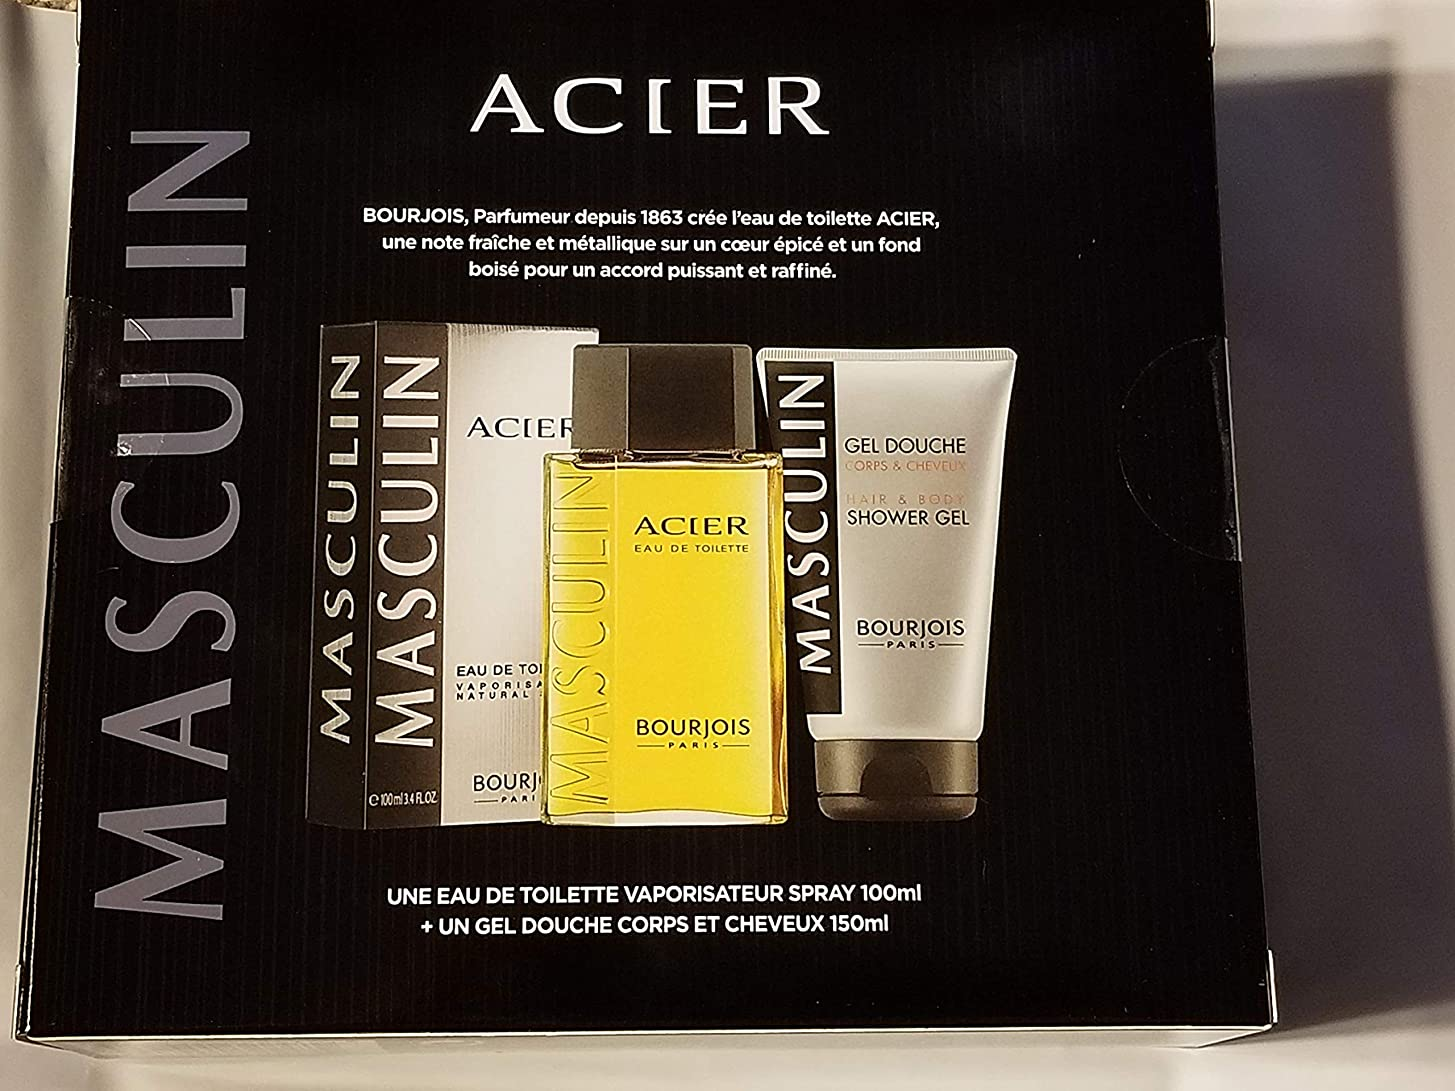 ジョグパラメータ放散するブルジョワ Masculin Coffret: Acier Eau De Toilette Spray 100ml+Hair & Body Shower Gel 150ml/5oz 2pcs並行輸入品